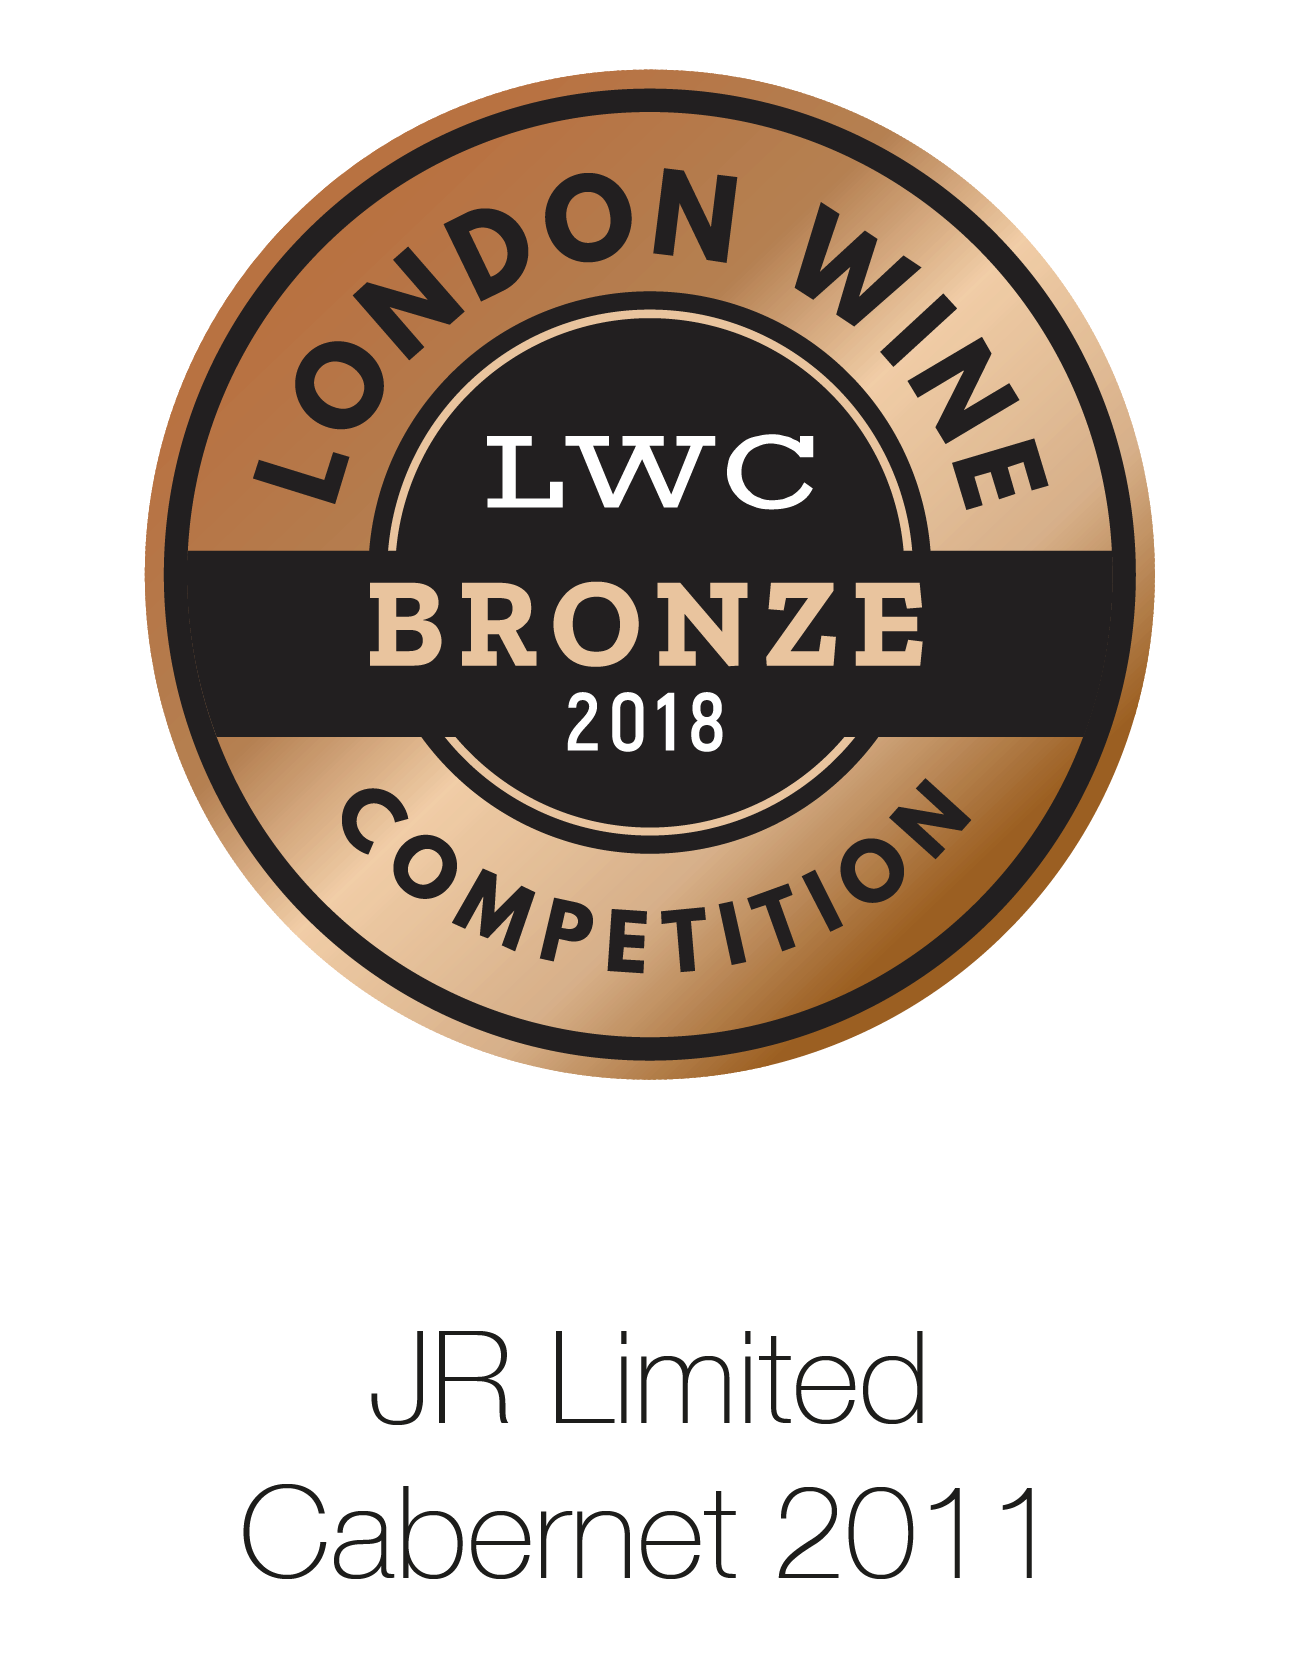 JR Limited Edition - Cabernet Sauvignon 2011 - London Wine Competition 2018